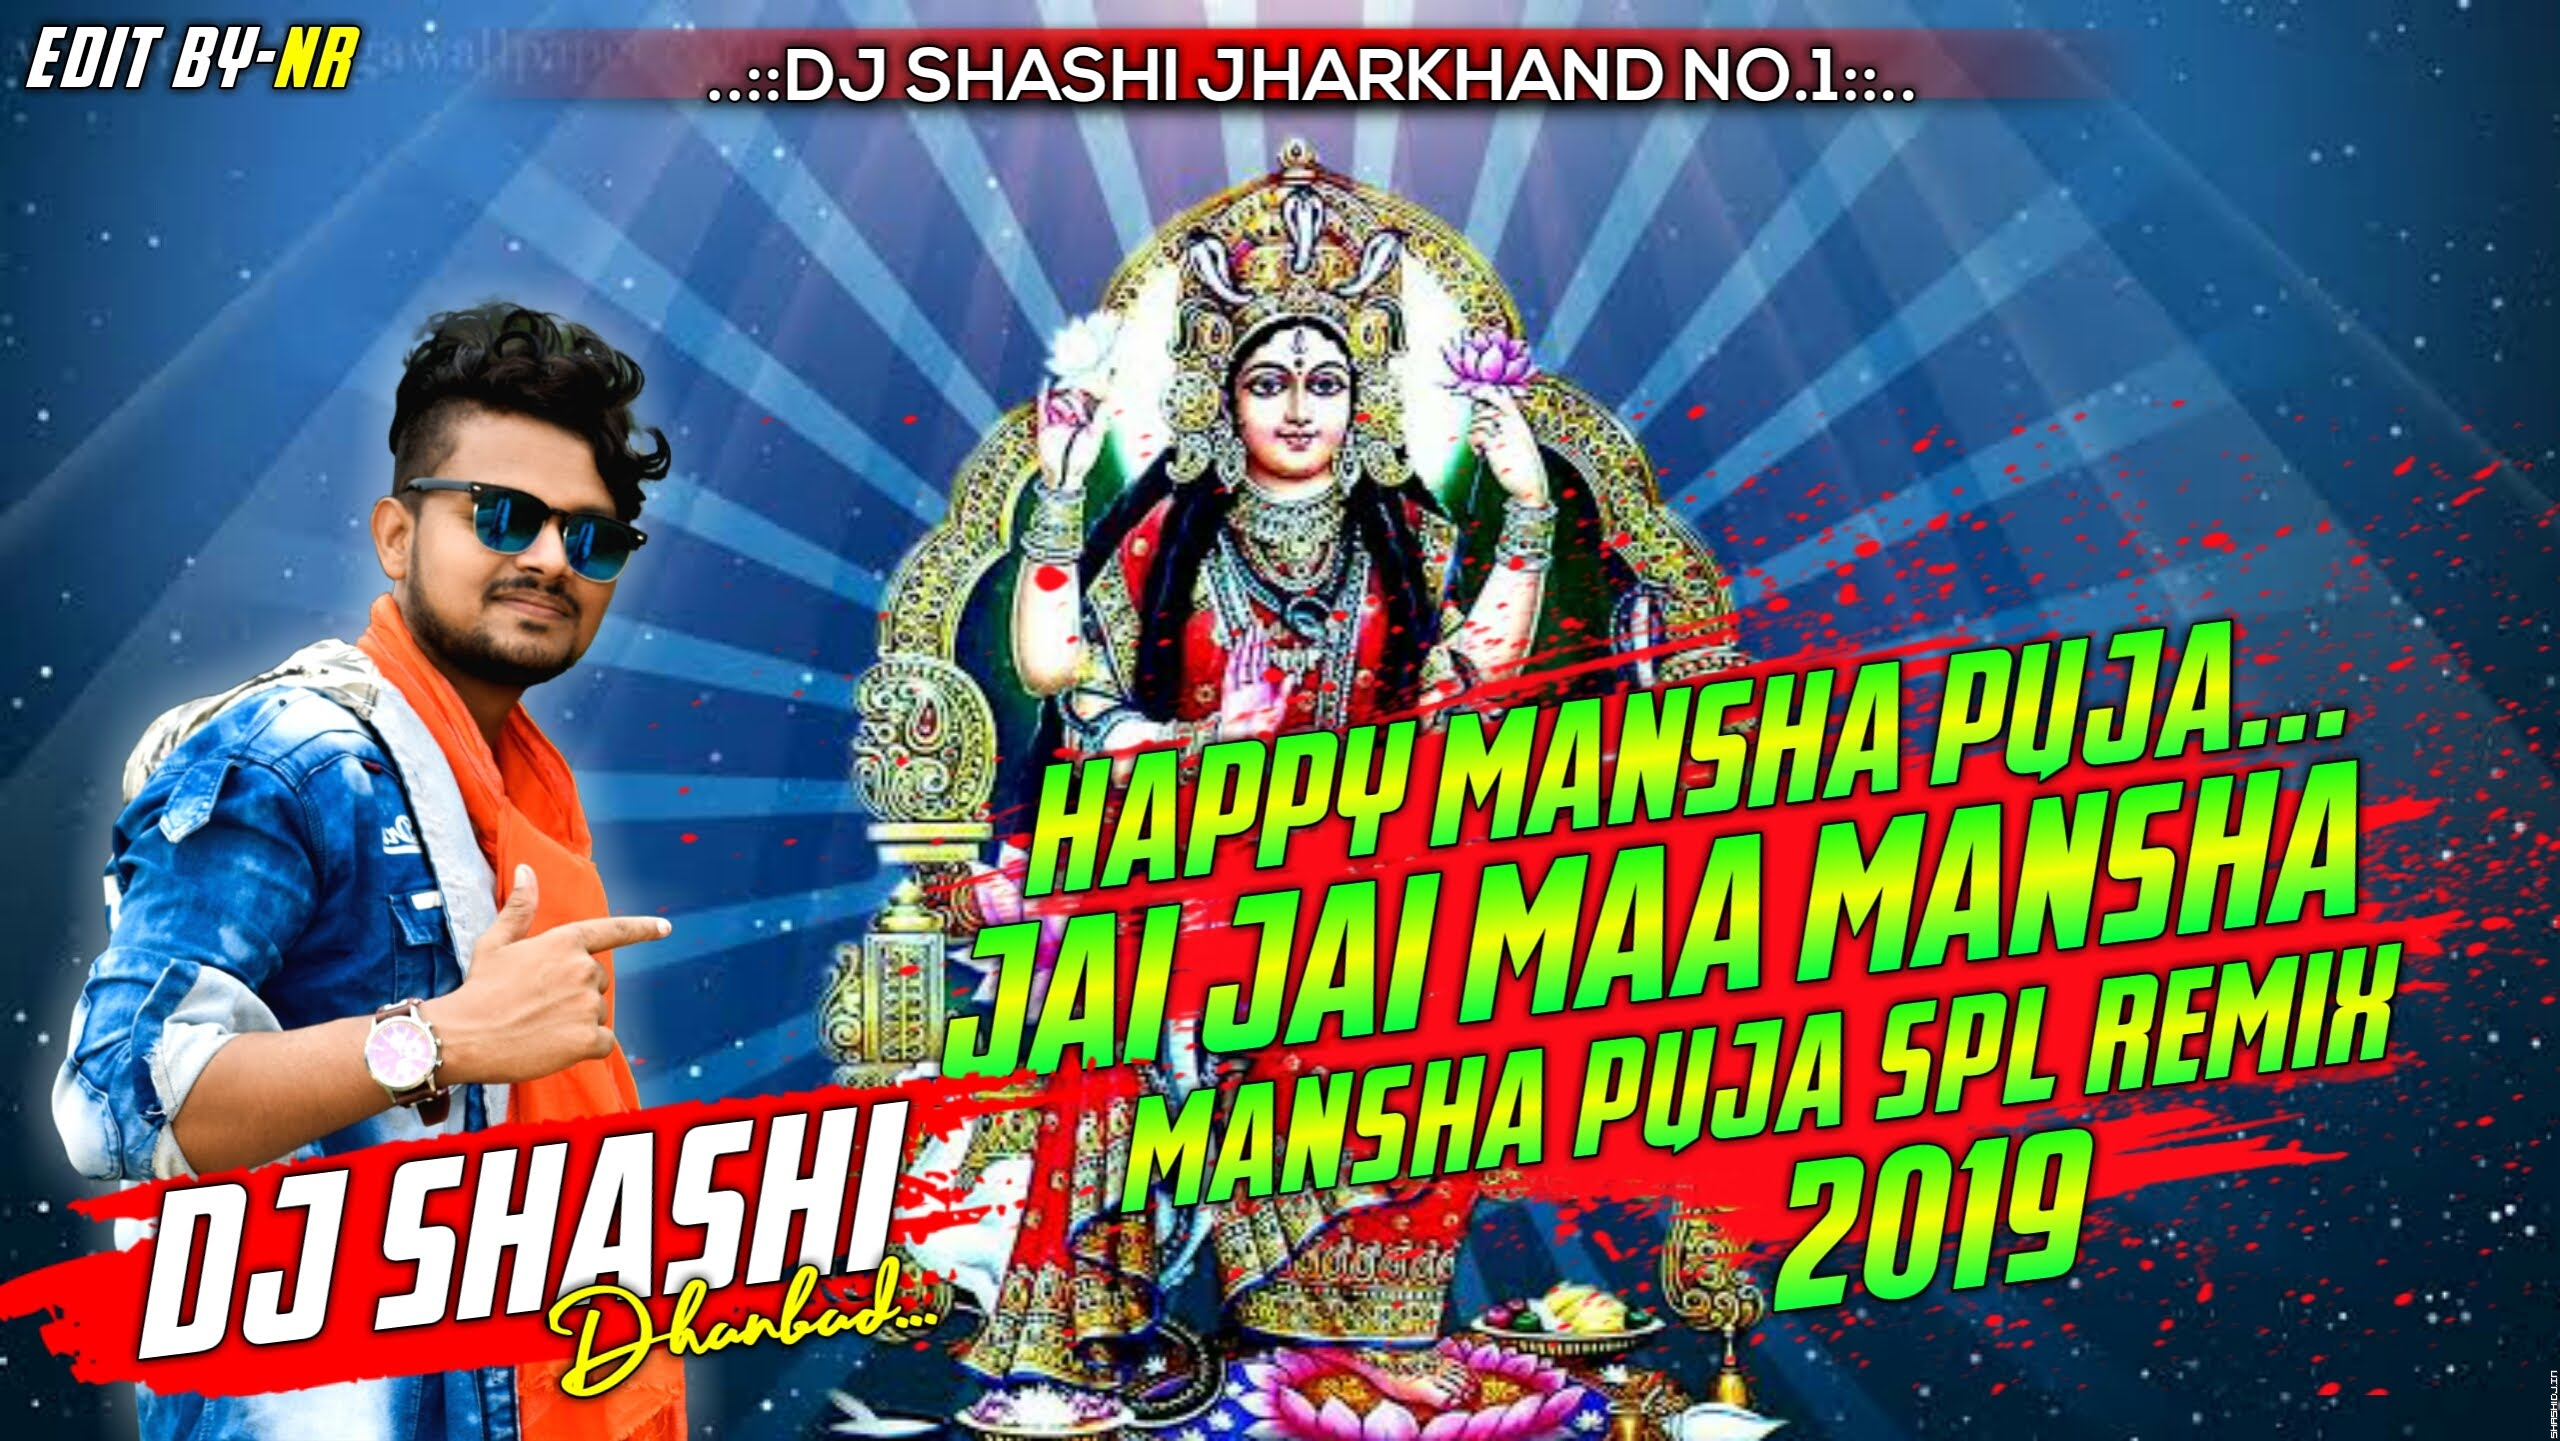 A Maa Go-- Best Dance Jhumar Mix By Dj Shashi.mp3